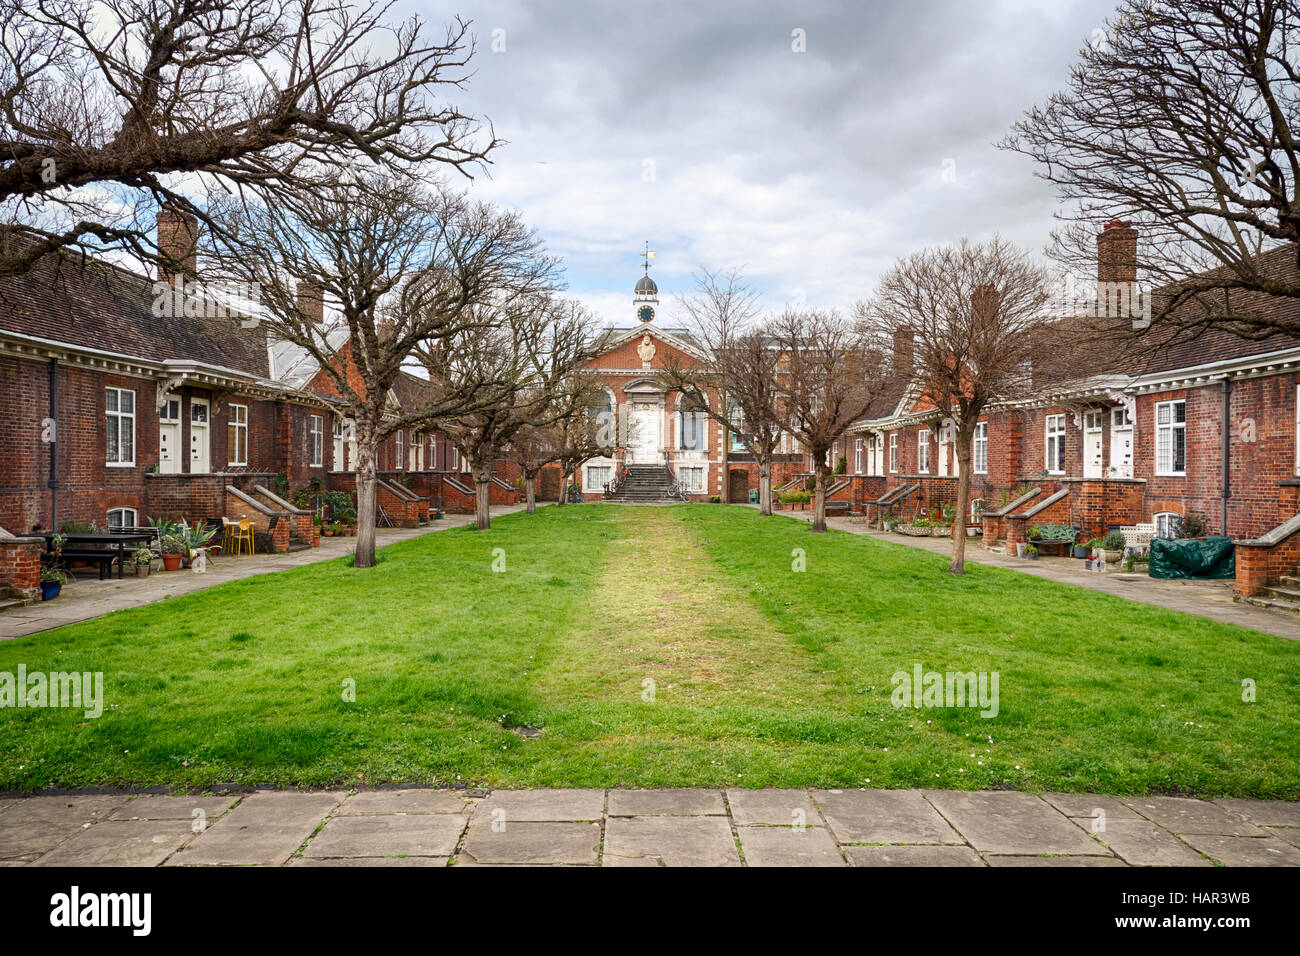 Trinity Green Alms Houses Mile End London built in 1695 - Stock Image